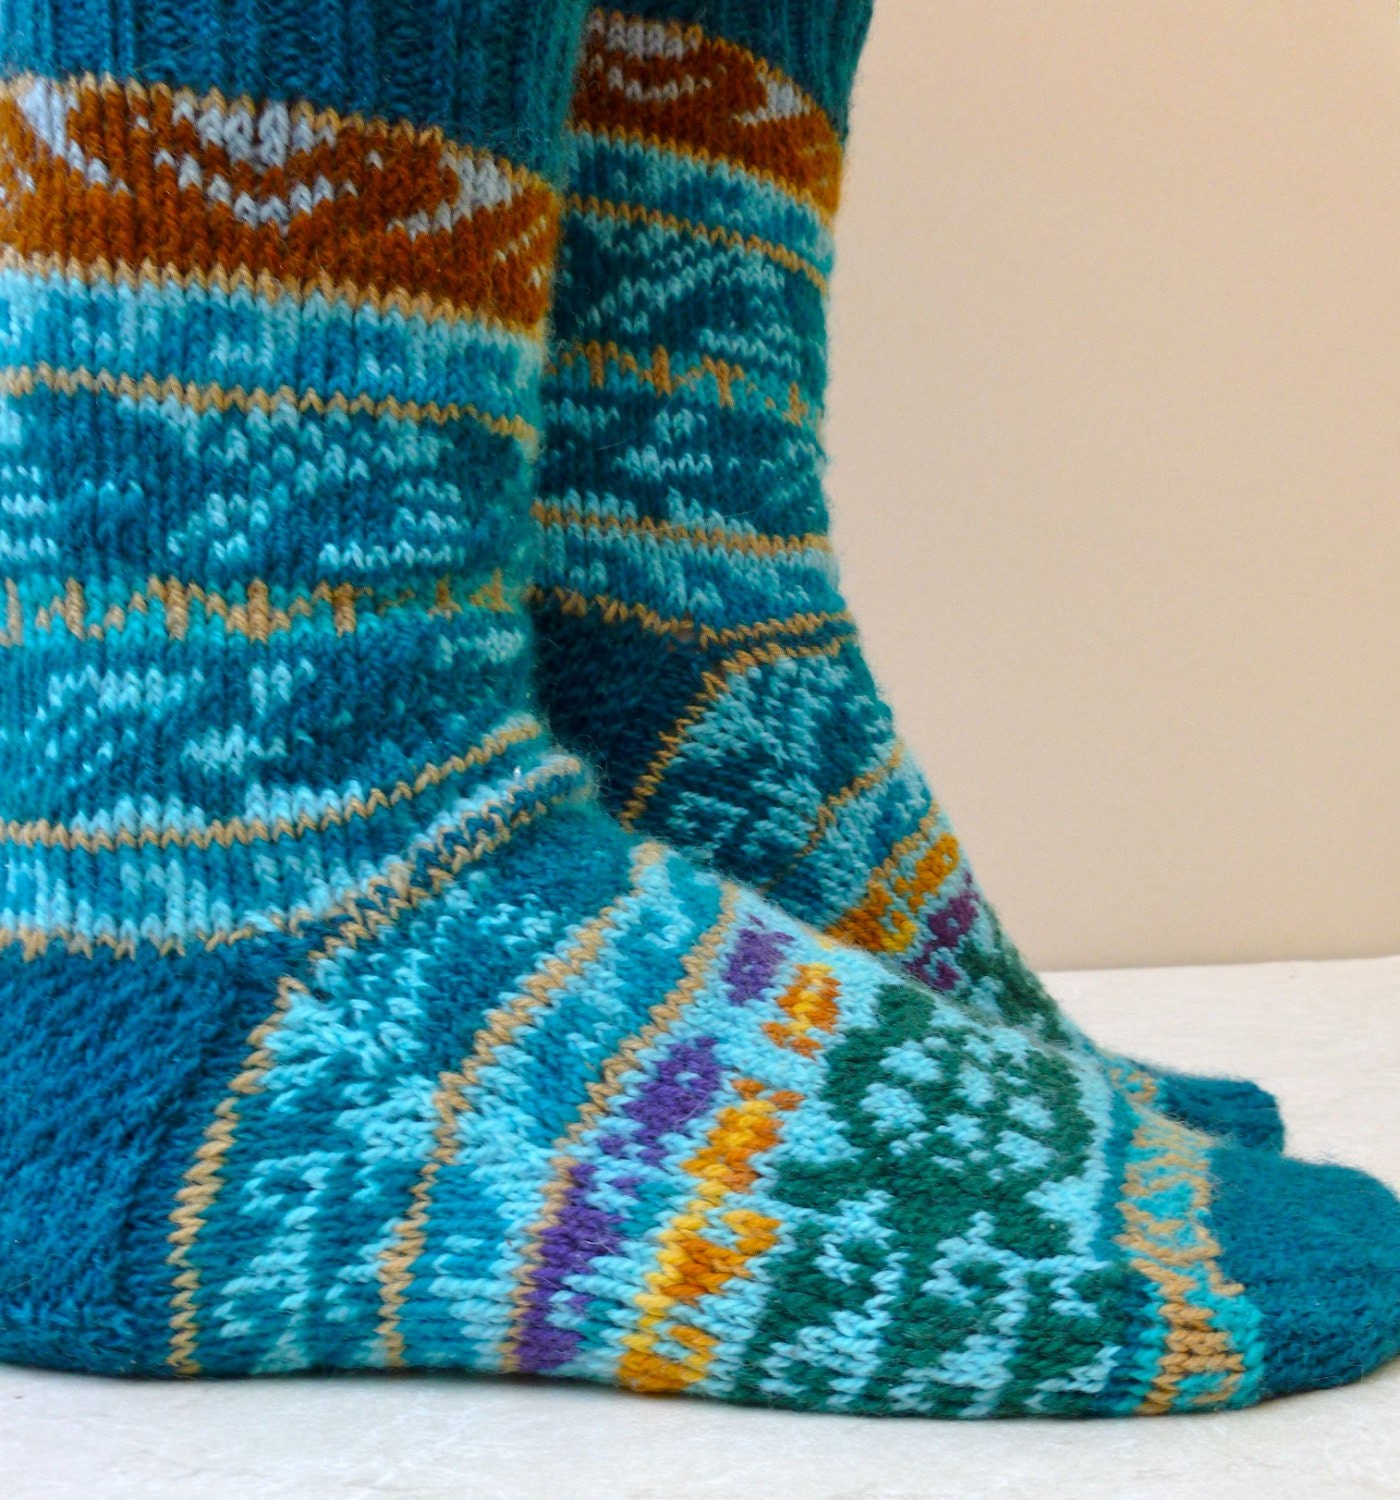 Digital Knitting Patterns : Pacific Rim Socks Digital Knitting Pattern by KunstwerkDesigns